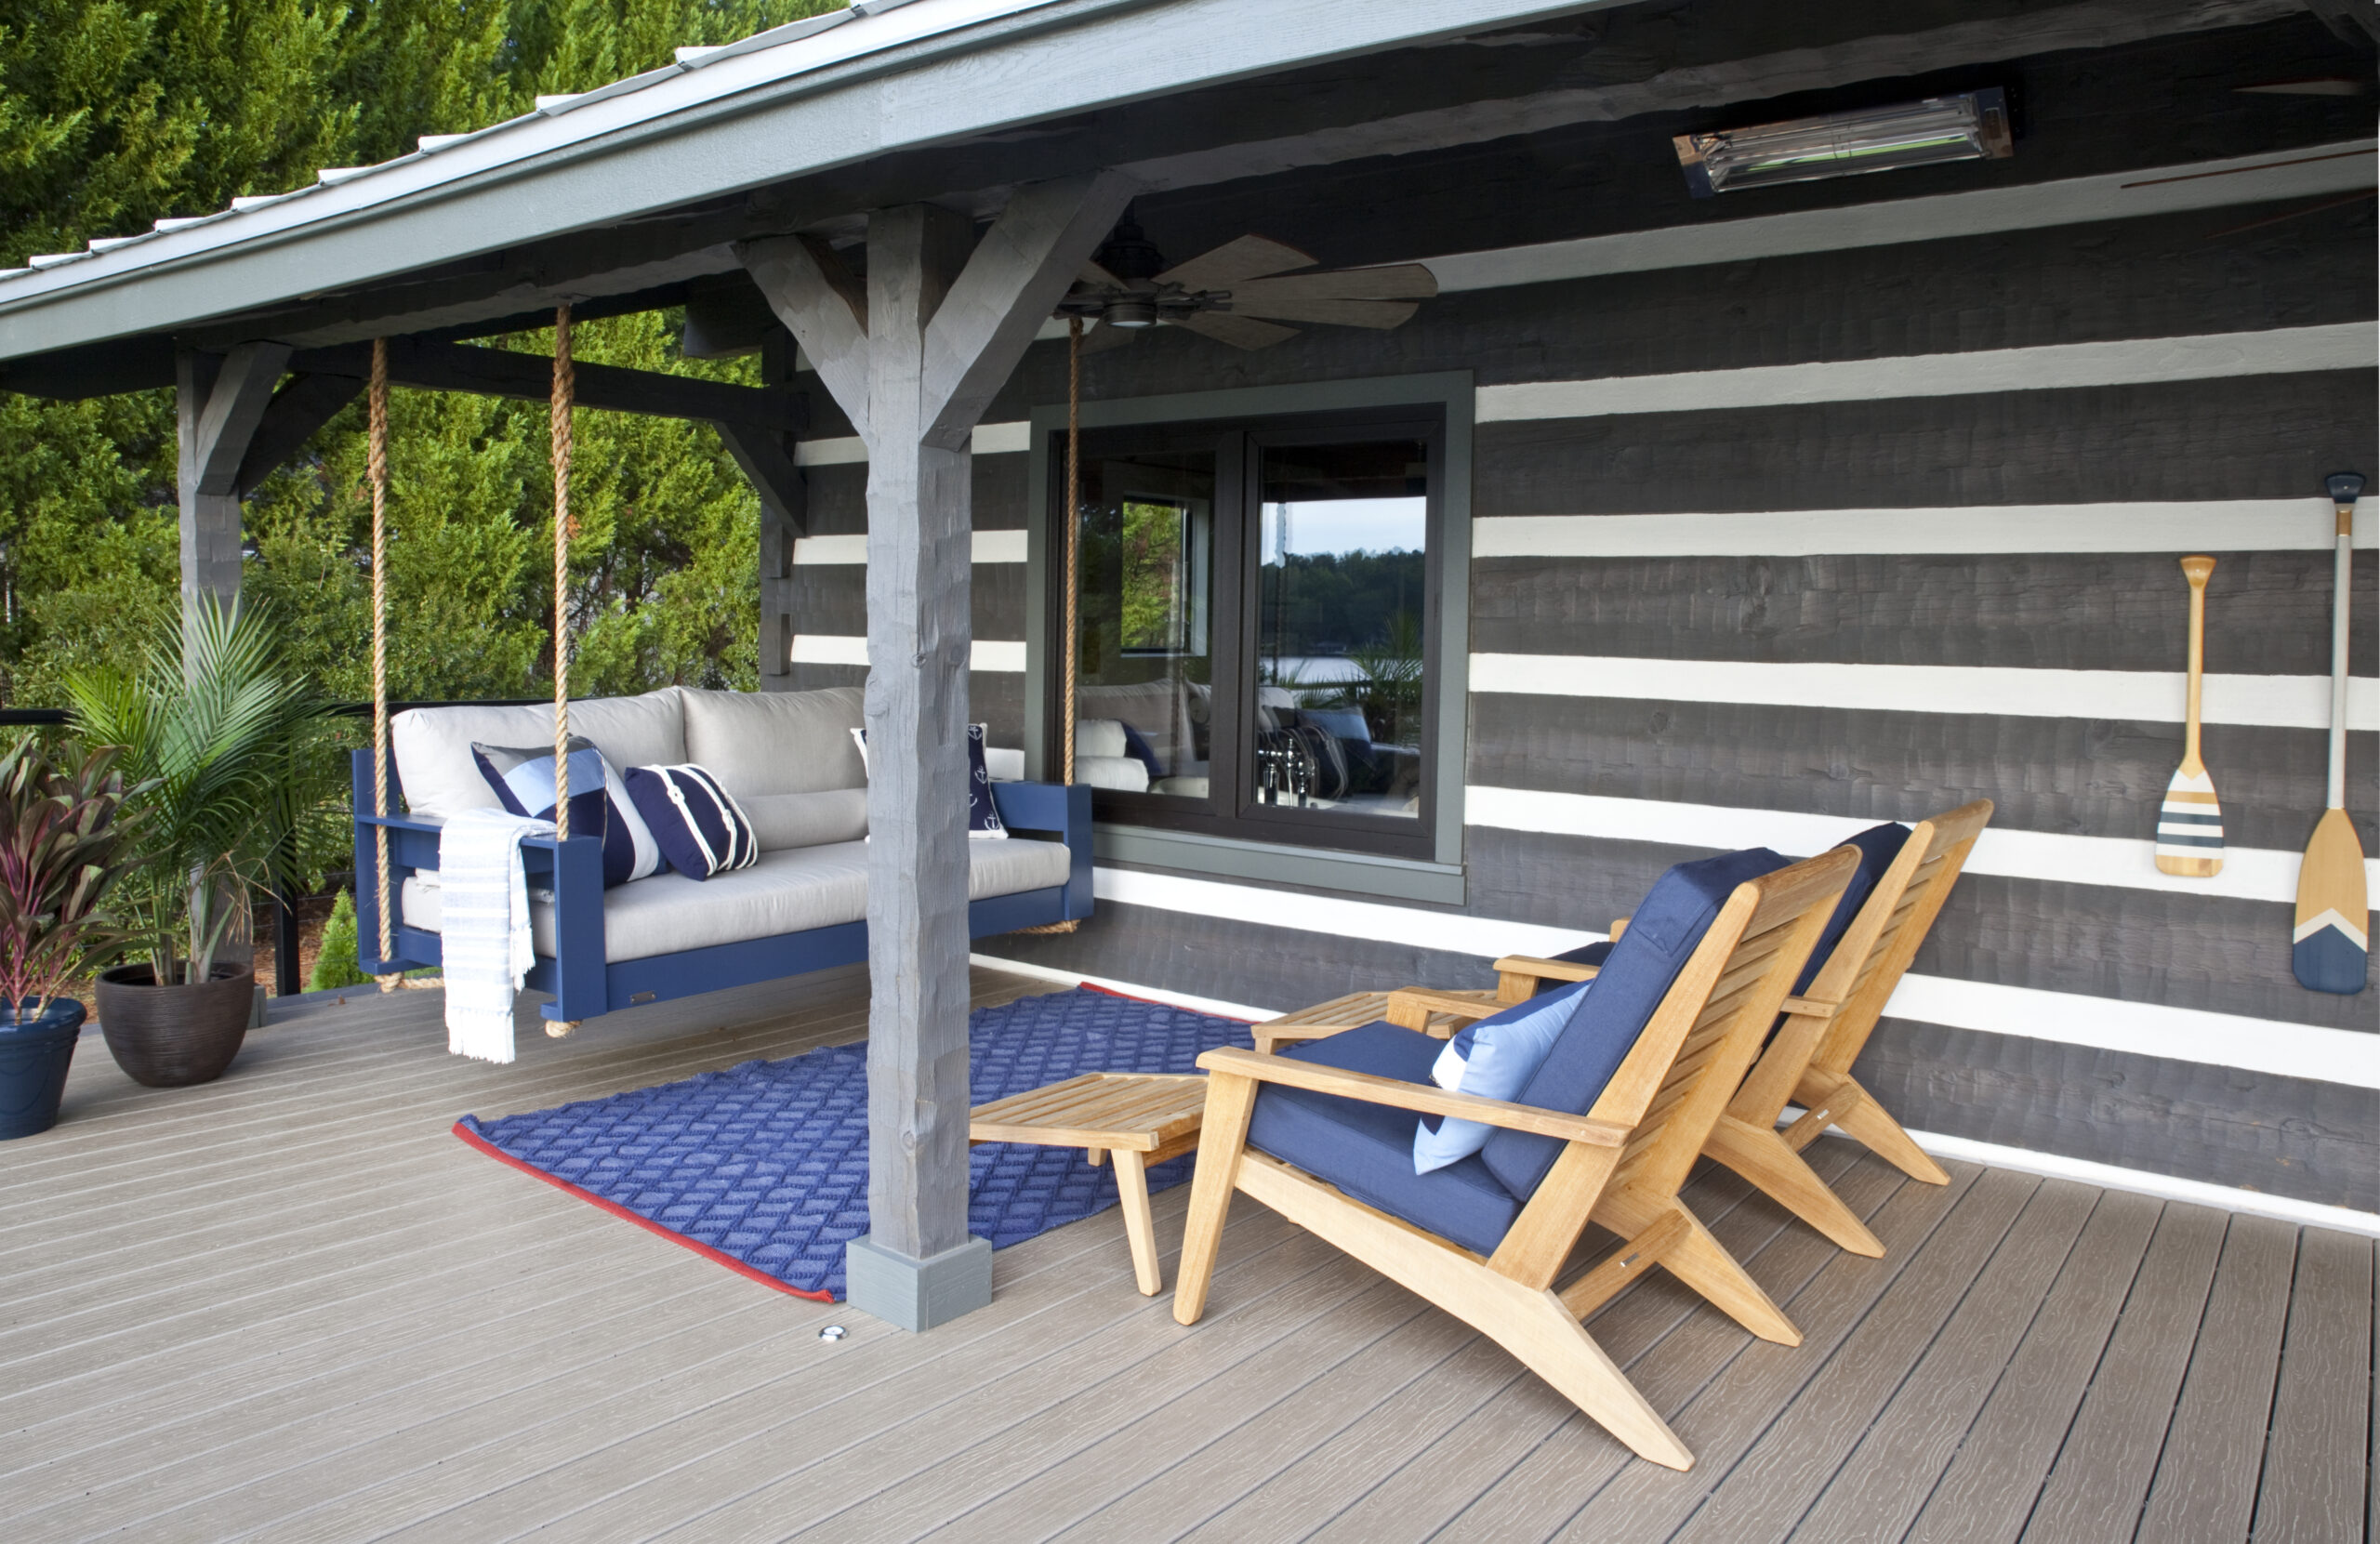 Shady relaxation spot outdoor living space design (Christina Wedge)